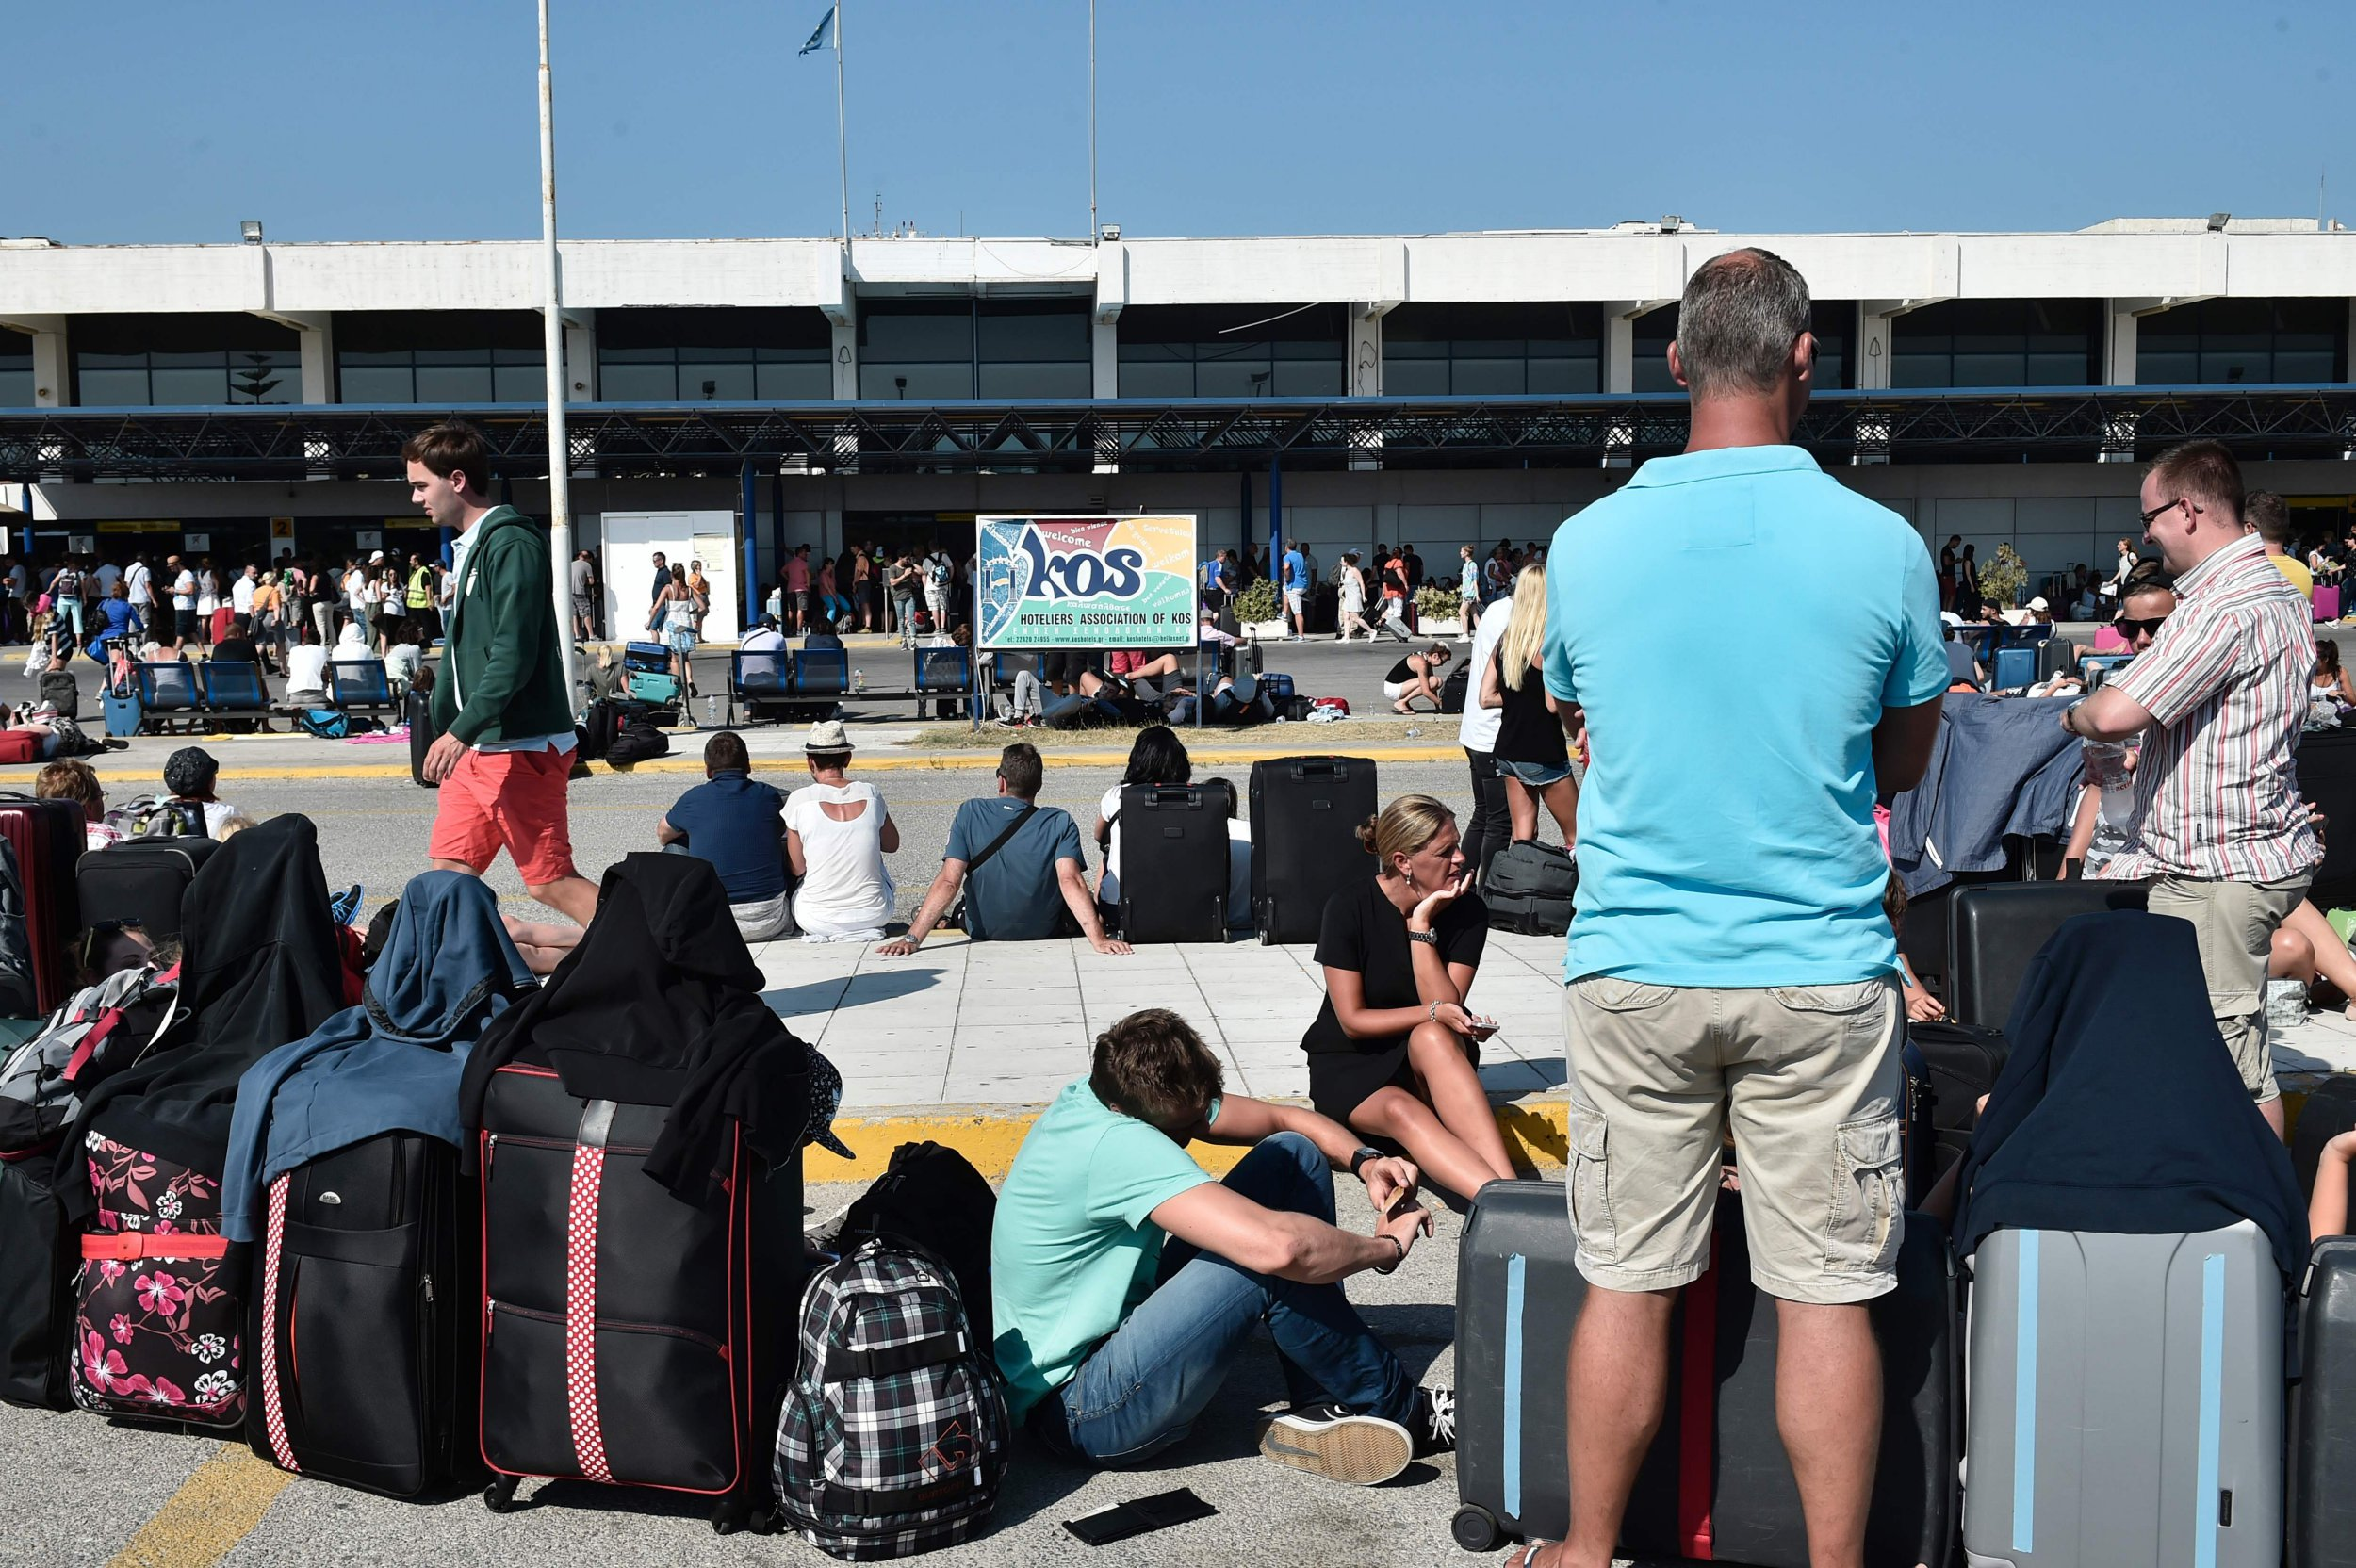 Hundreds of tourists flee to Kos airport after 6.5 magnitude earthquake